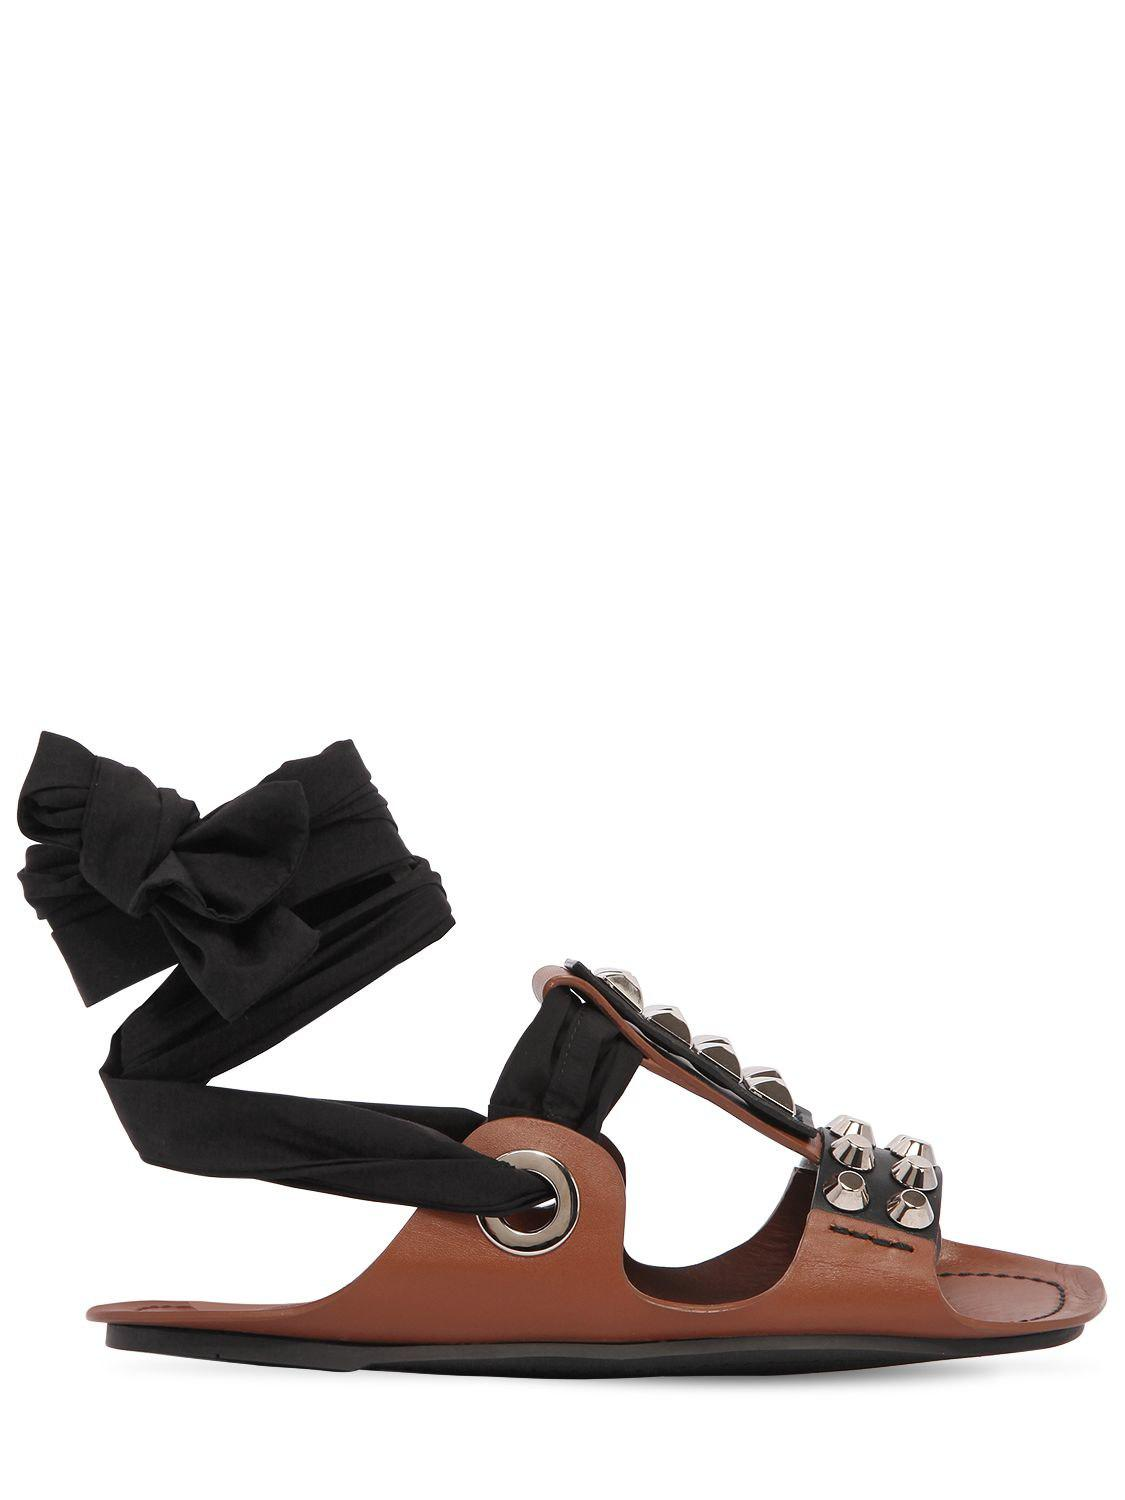 Prada Embossed Lace-Up Sandals best online clearance store cheap online factory outlet online newest cheap online sale pre order 0bLd45Iom